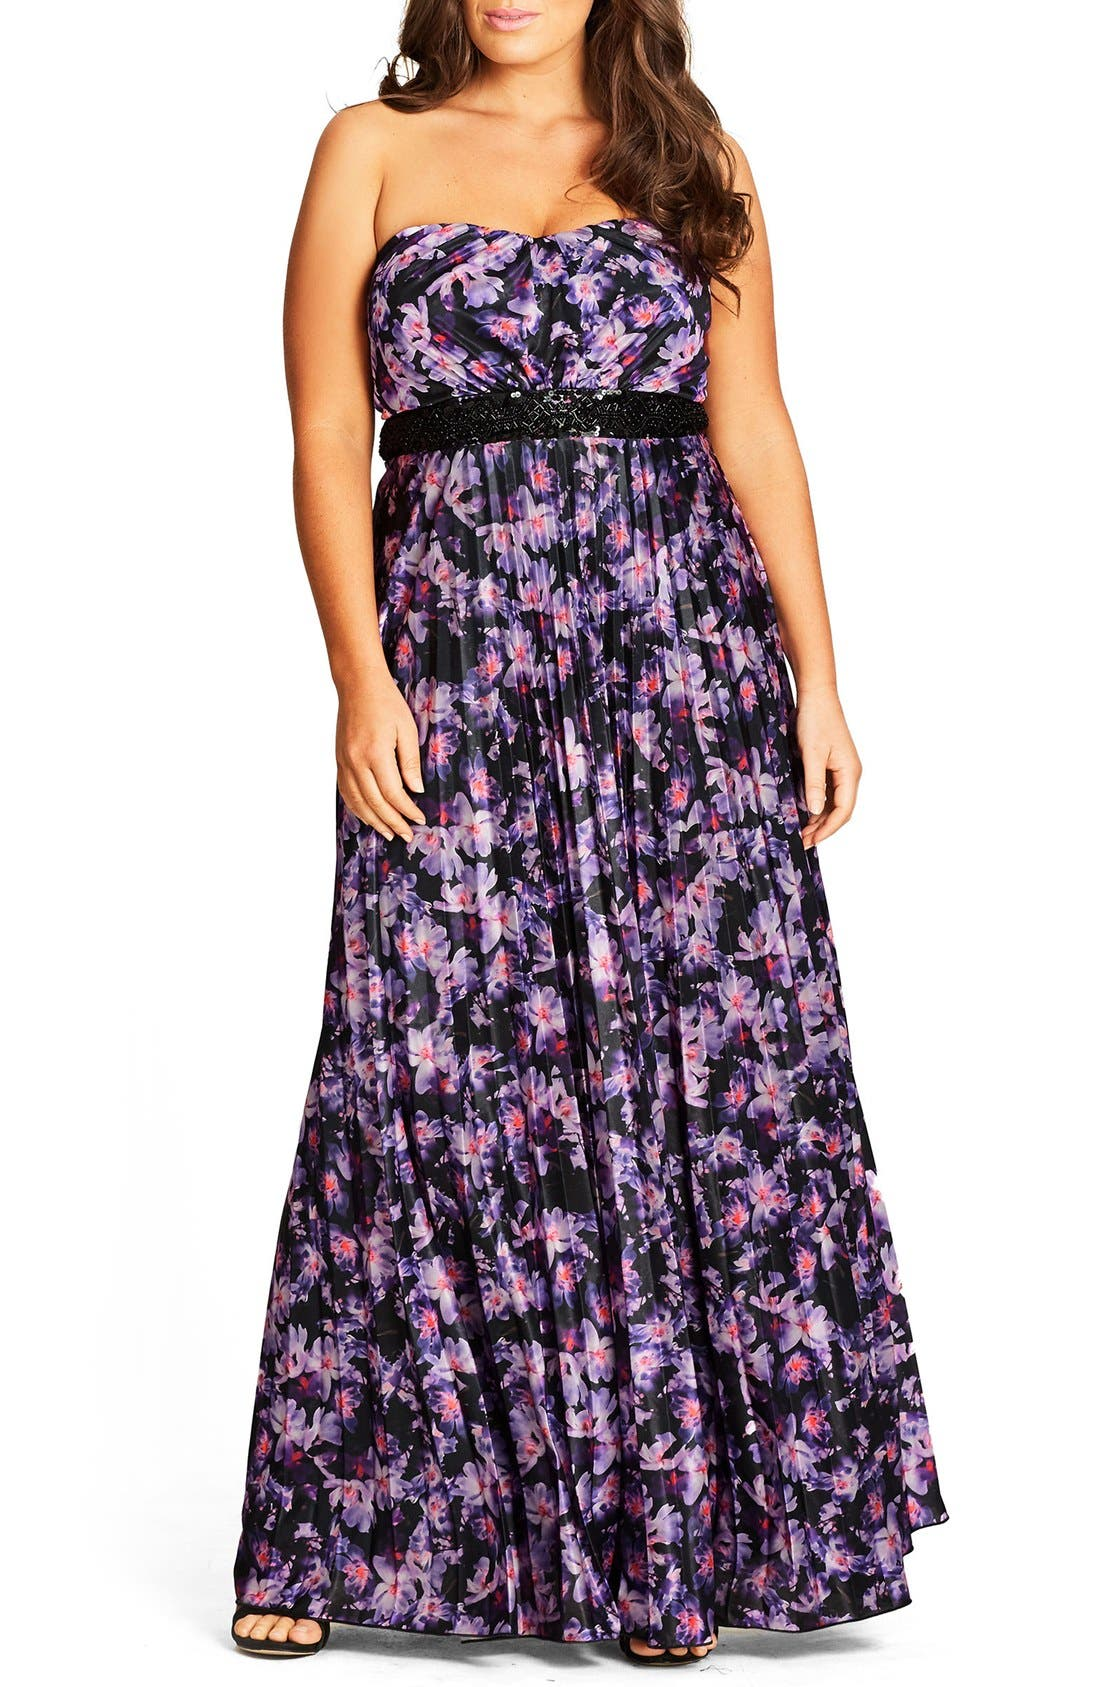 CITY CHIC Helena Print Strapless Maxi Dress